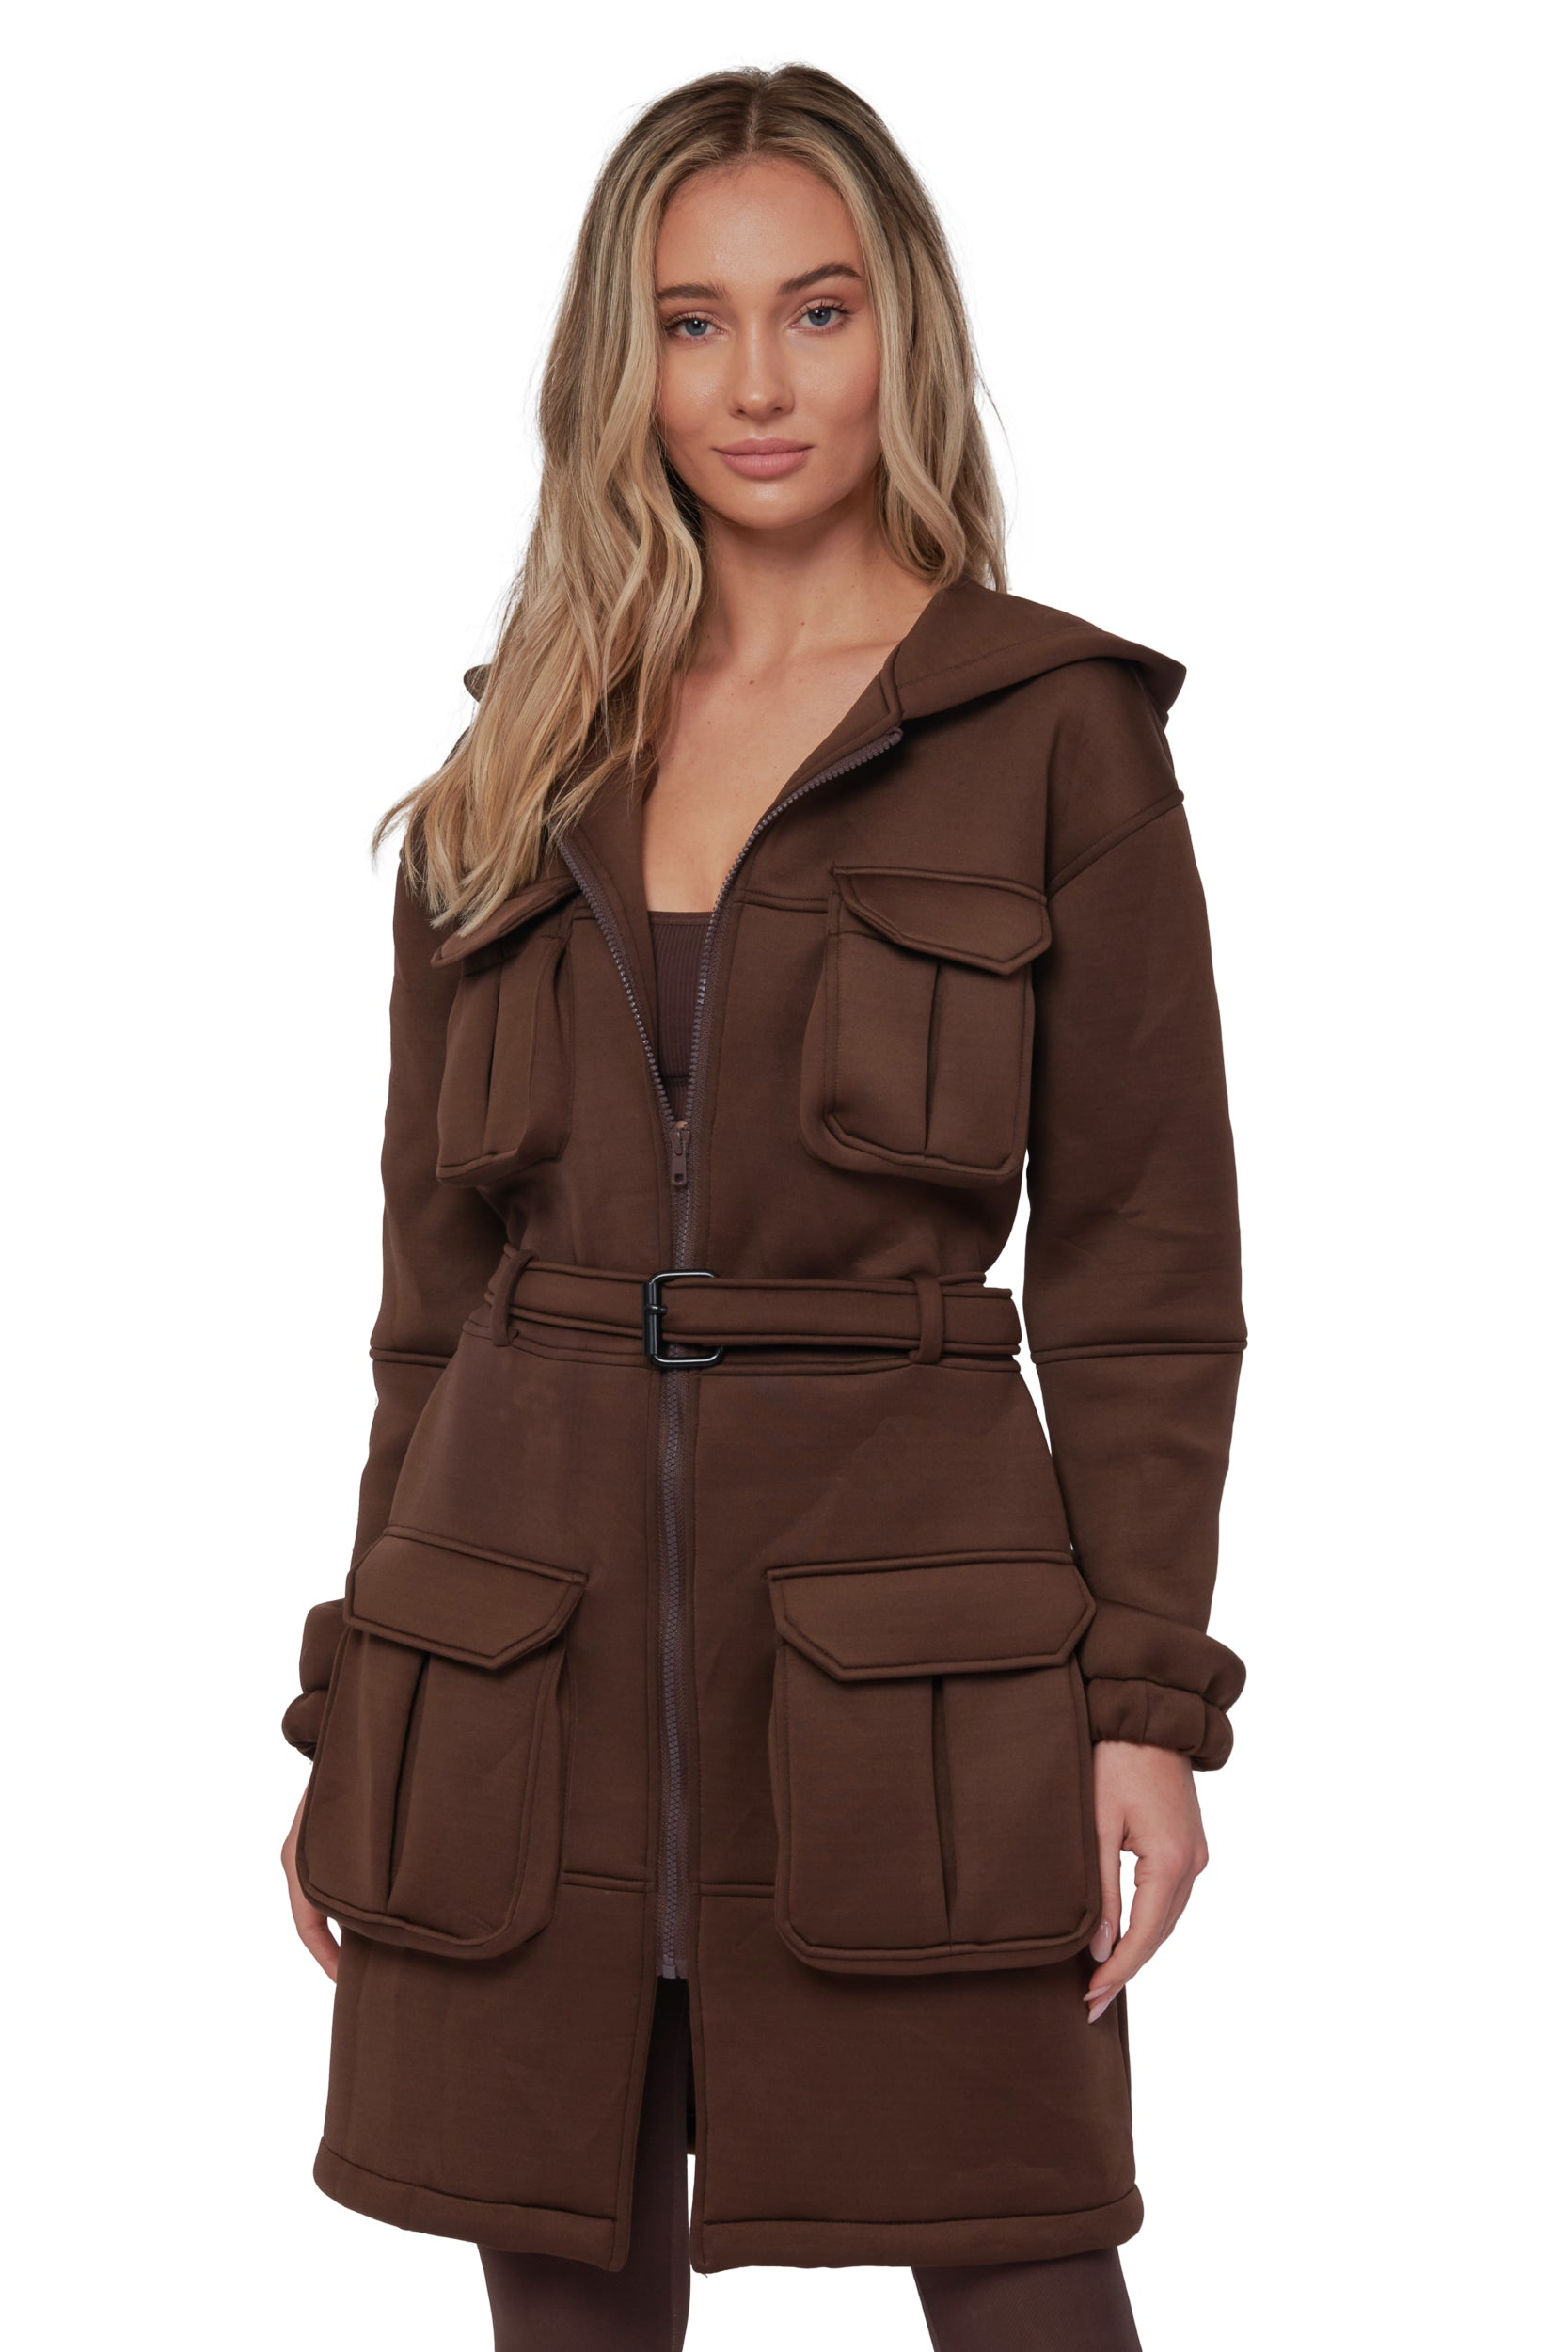 Swiss Miss Trench Coat